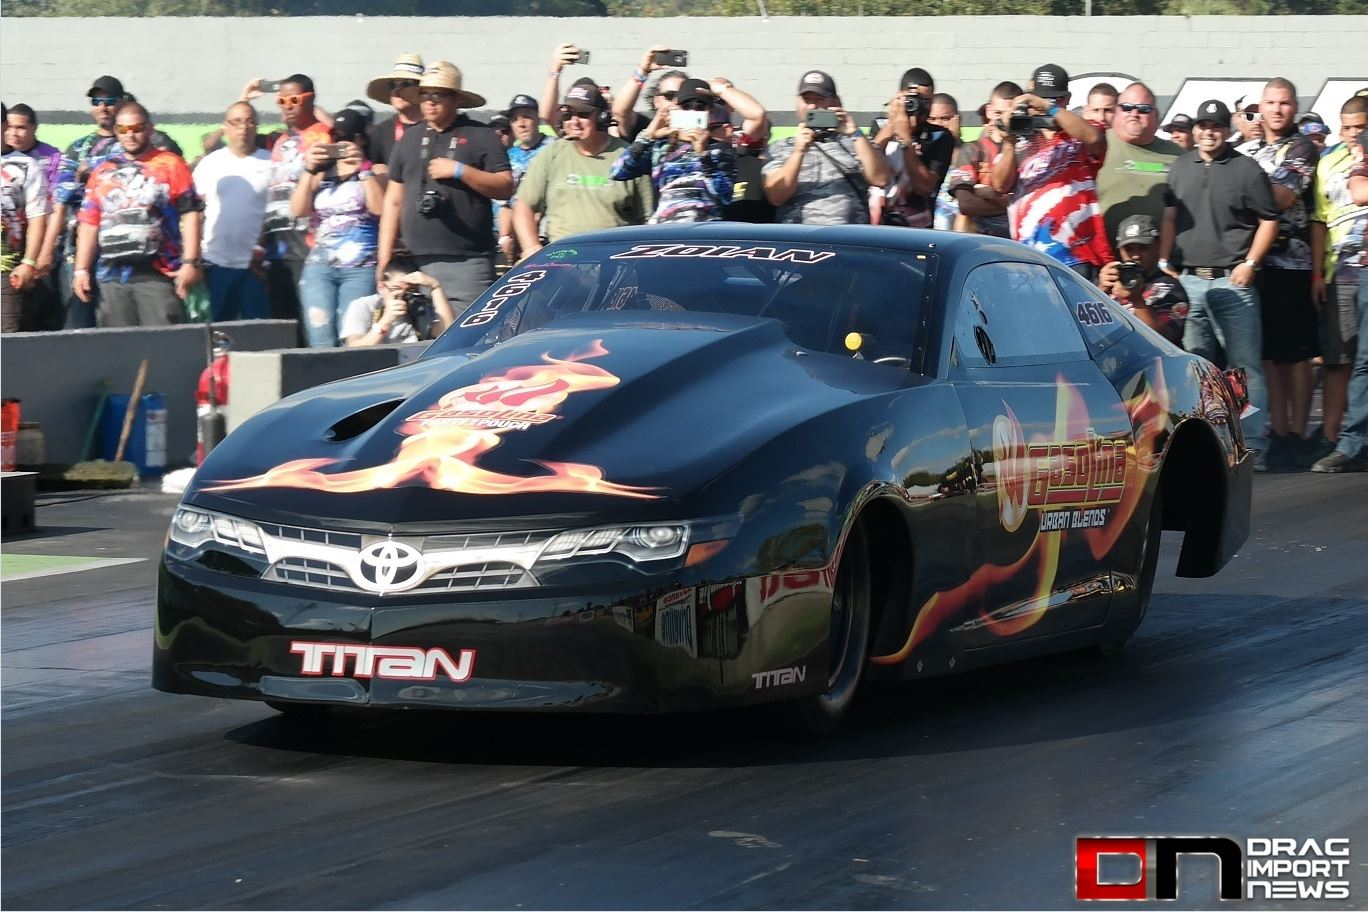 Top 10 Quickest Import - Drag Import News